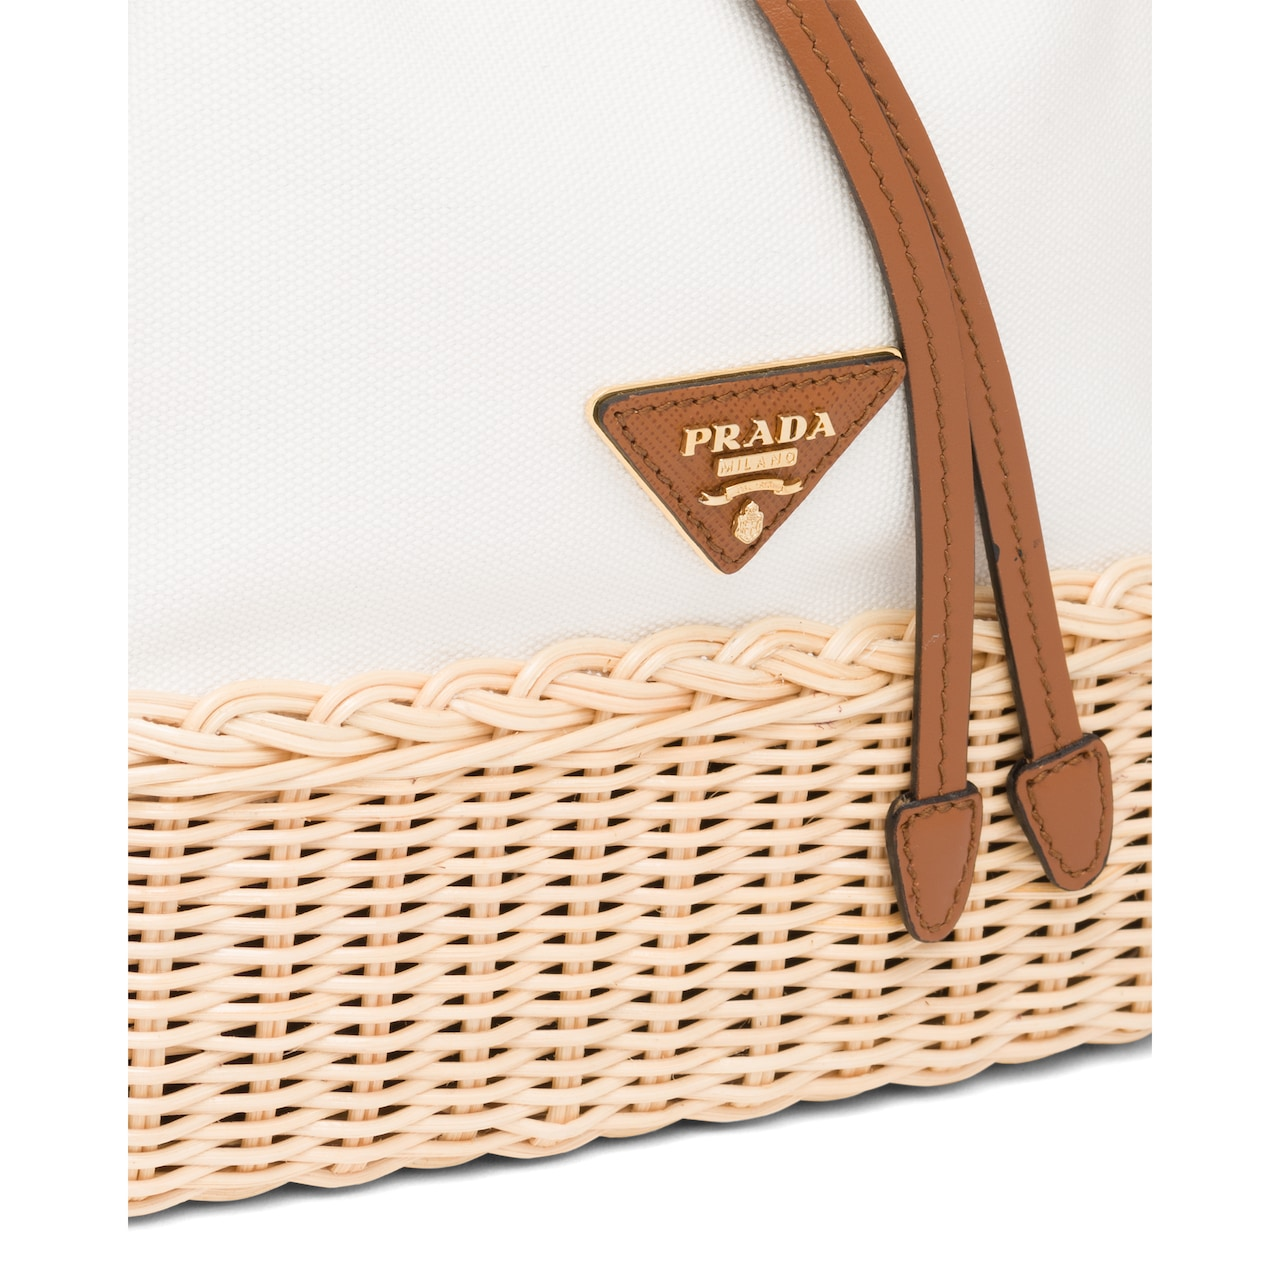 Prada Prada Plage wicker and canvas bucket bag 6